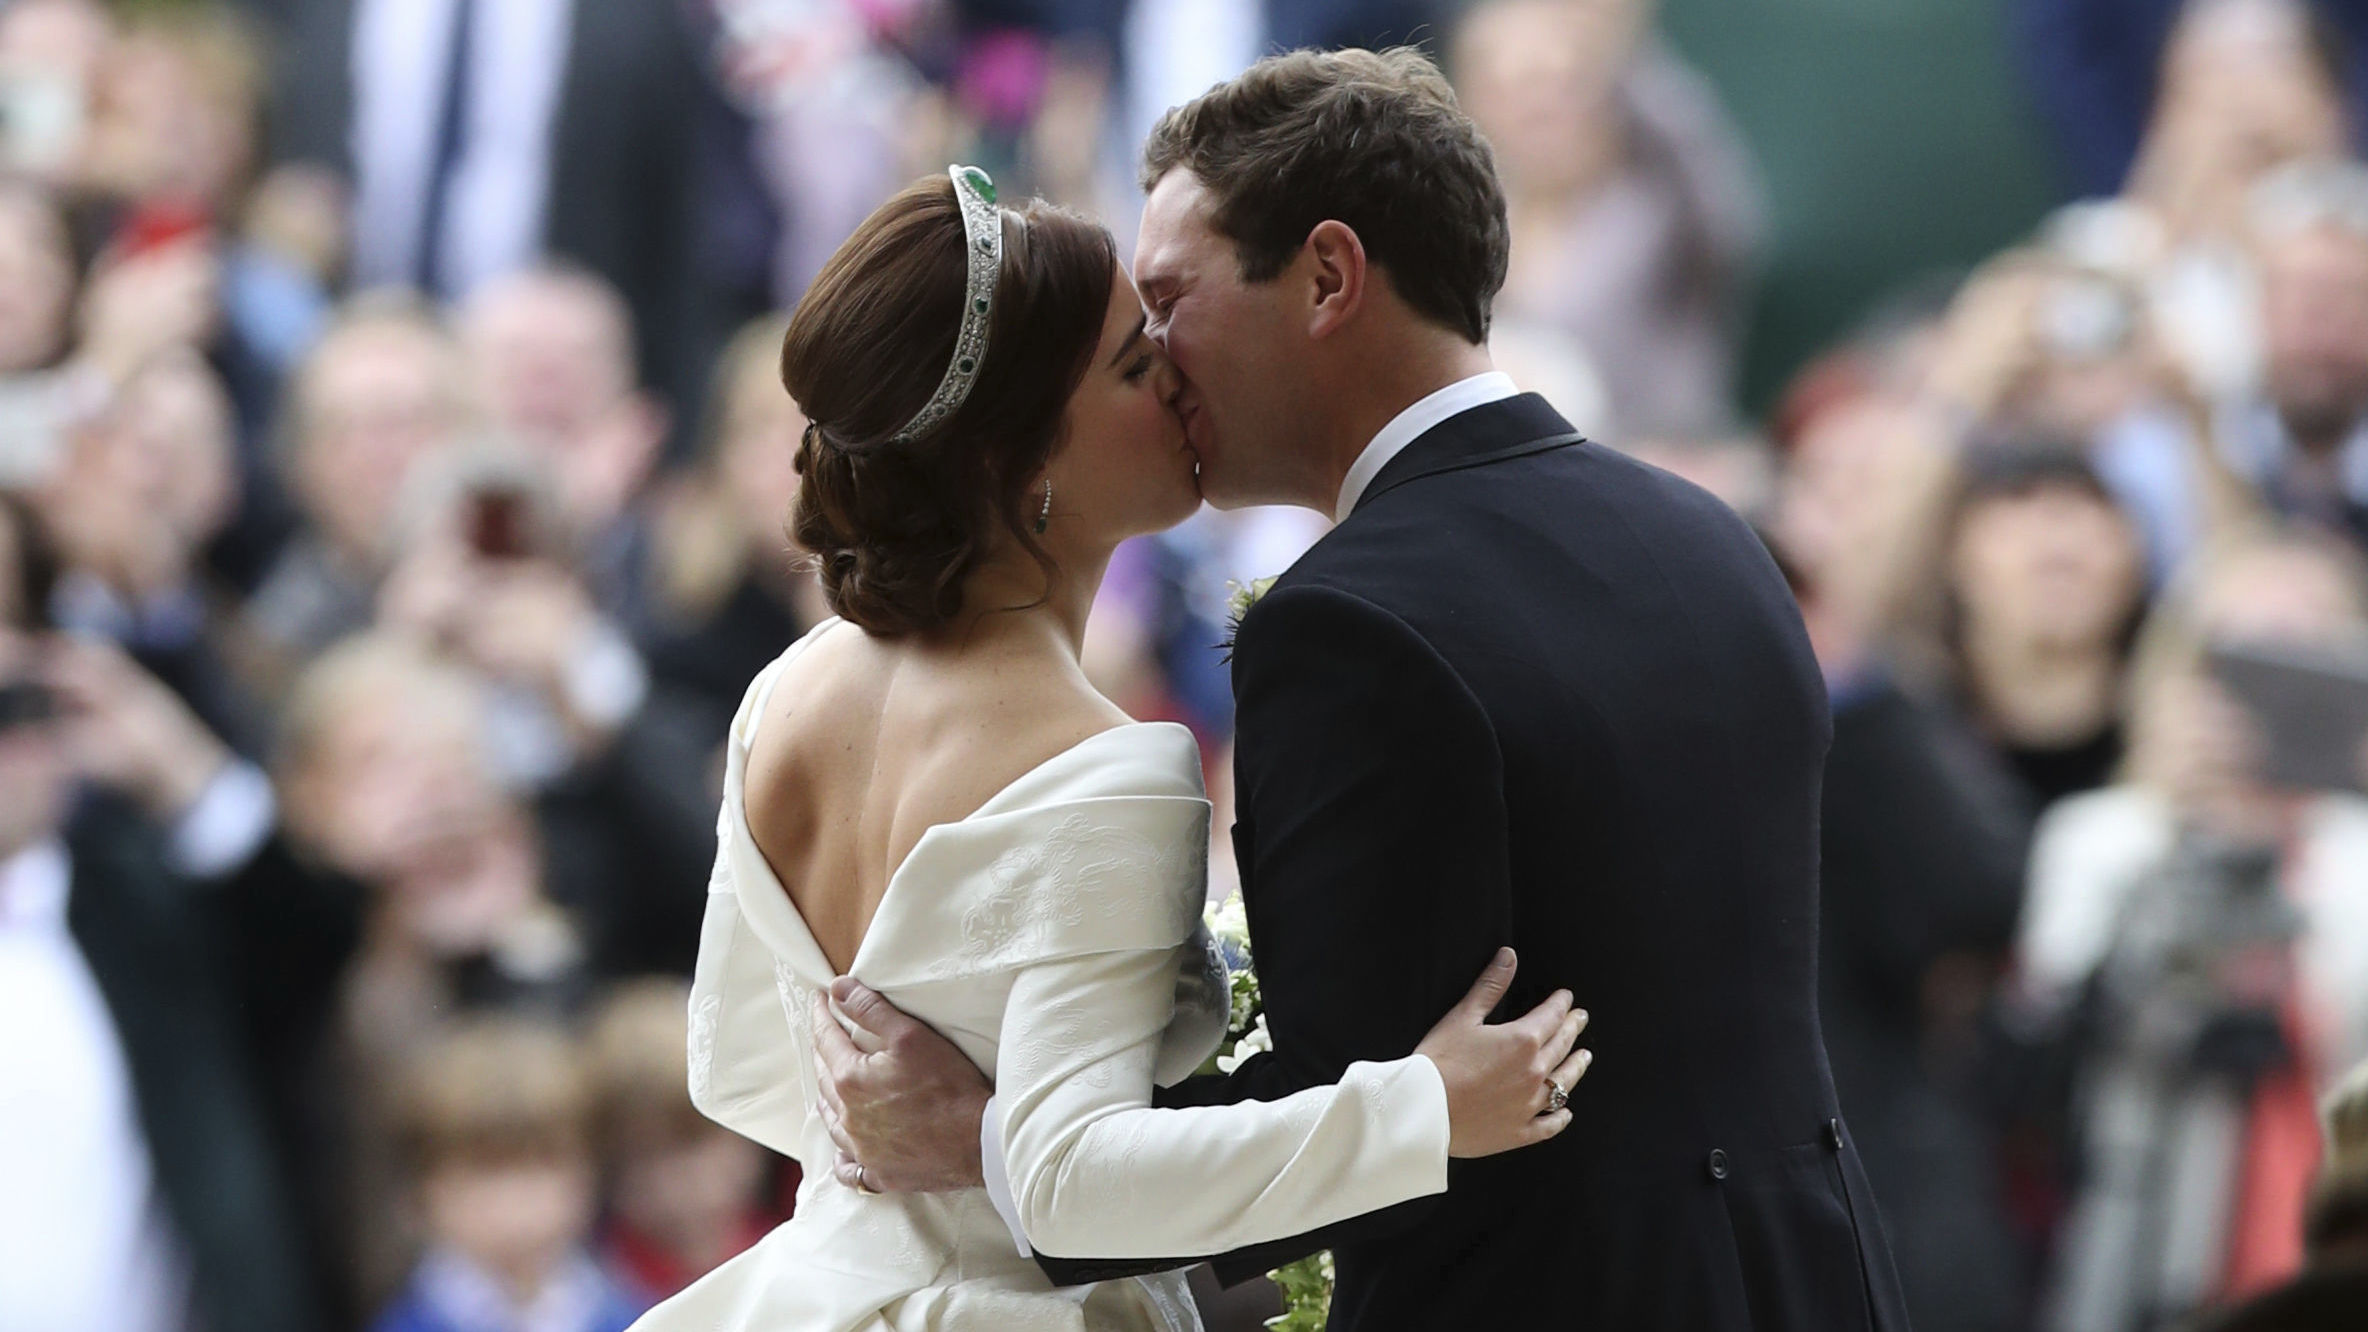 39you Look Perfect39 Princess Eugenie Of York Marries In